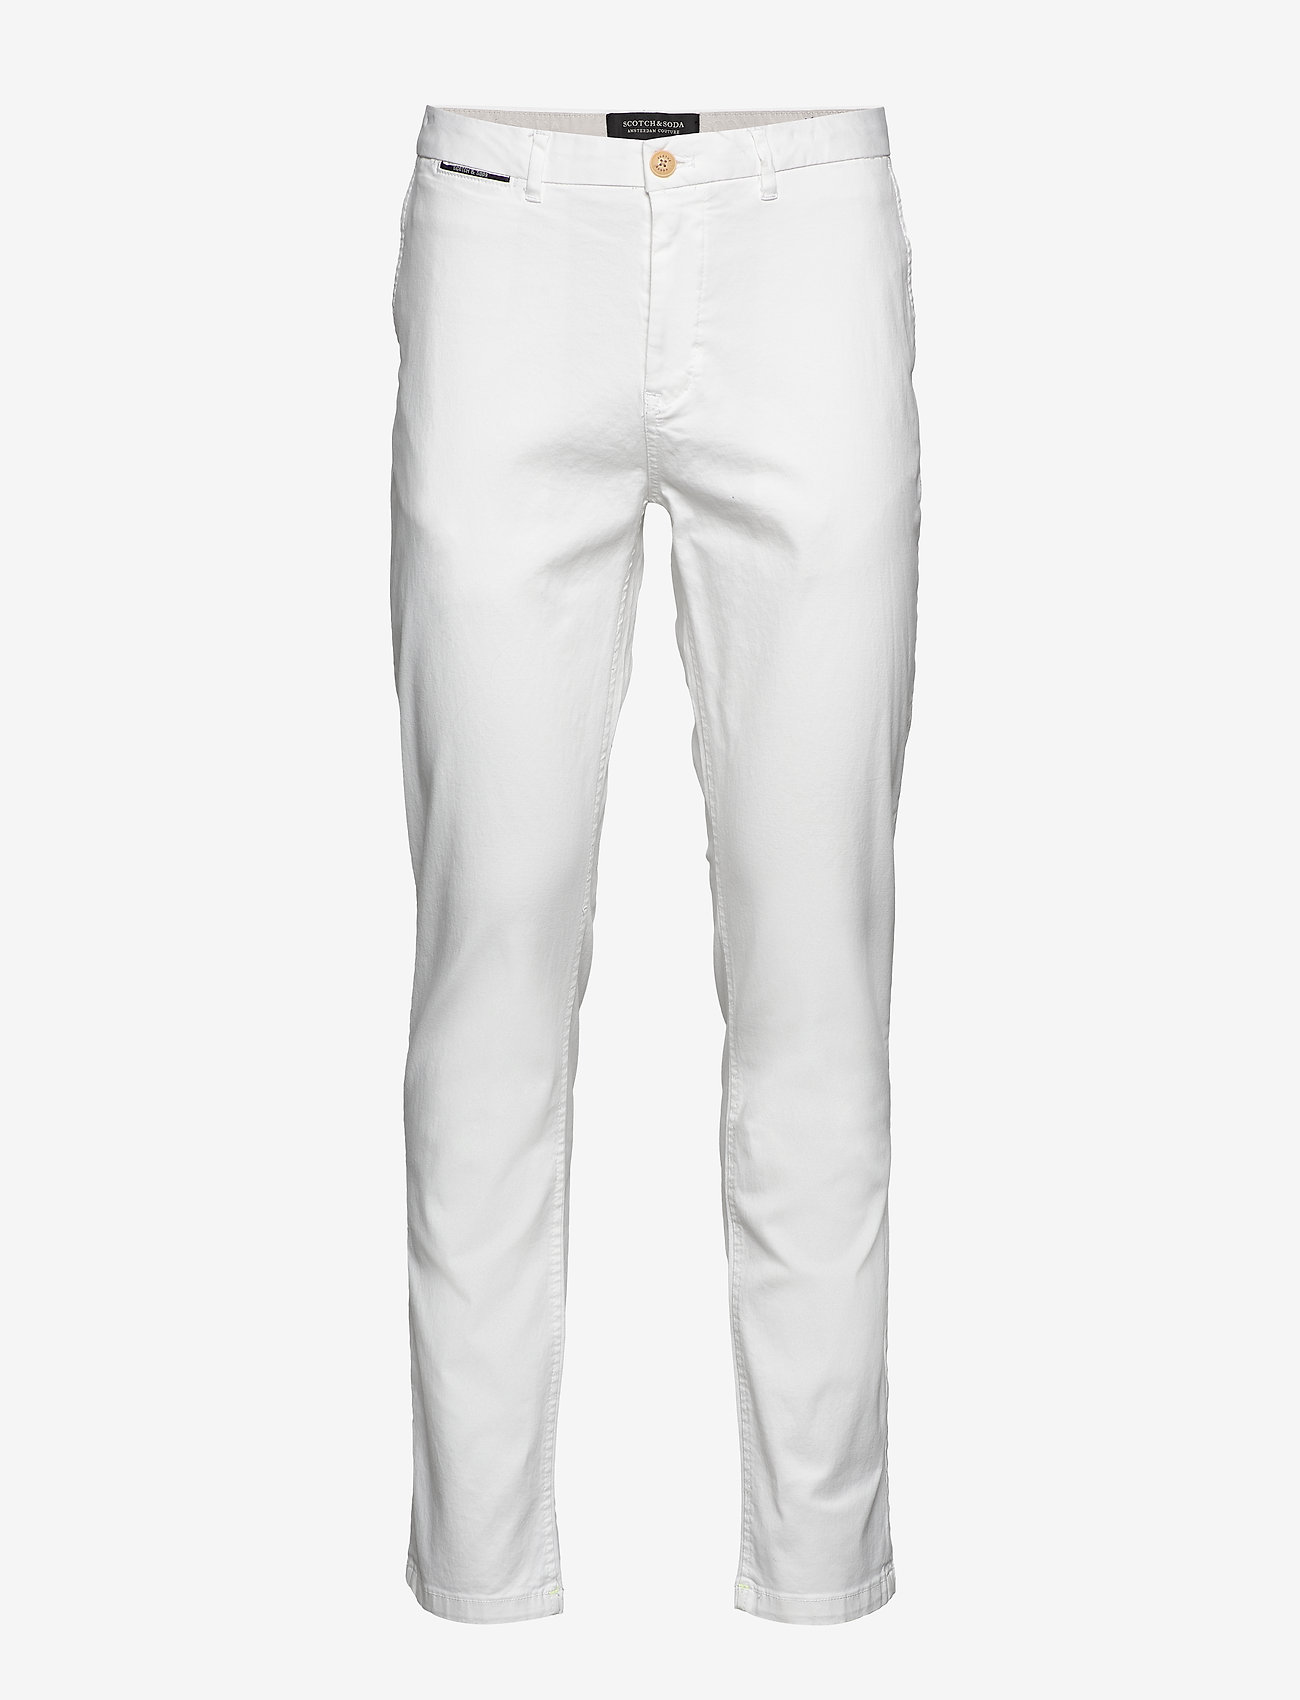 Scotch & Soda - STUART- Classic chino - chinos - denim white - 0